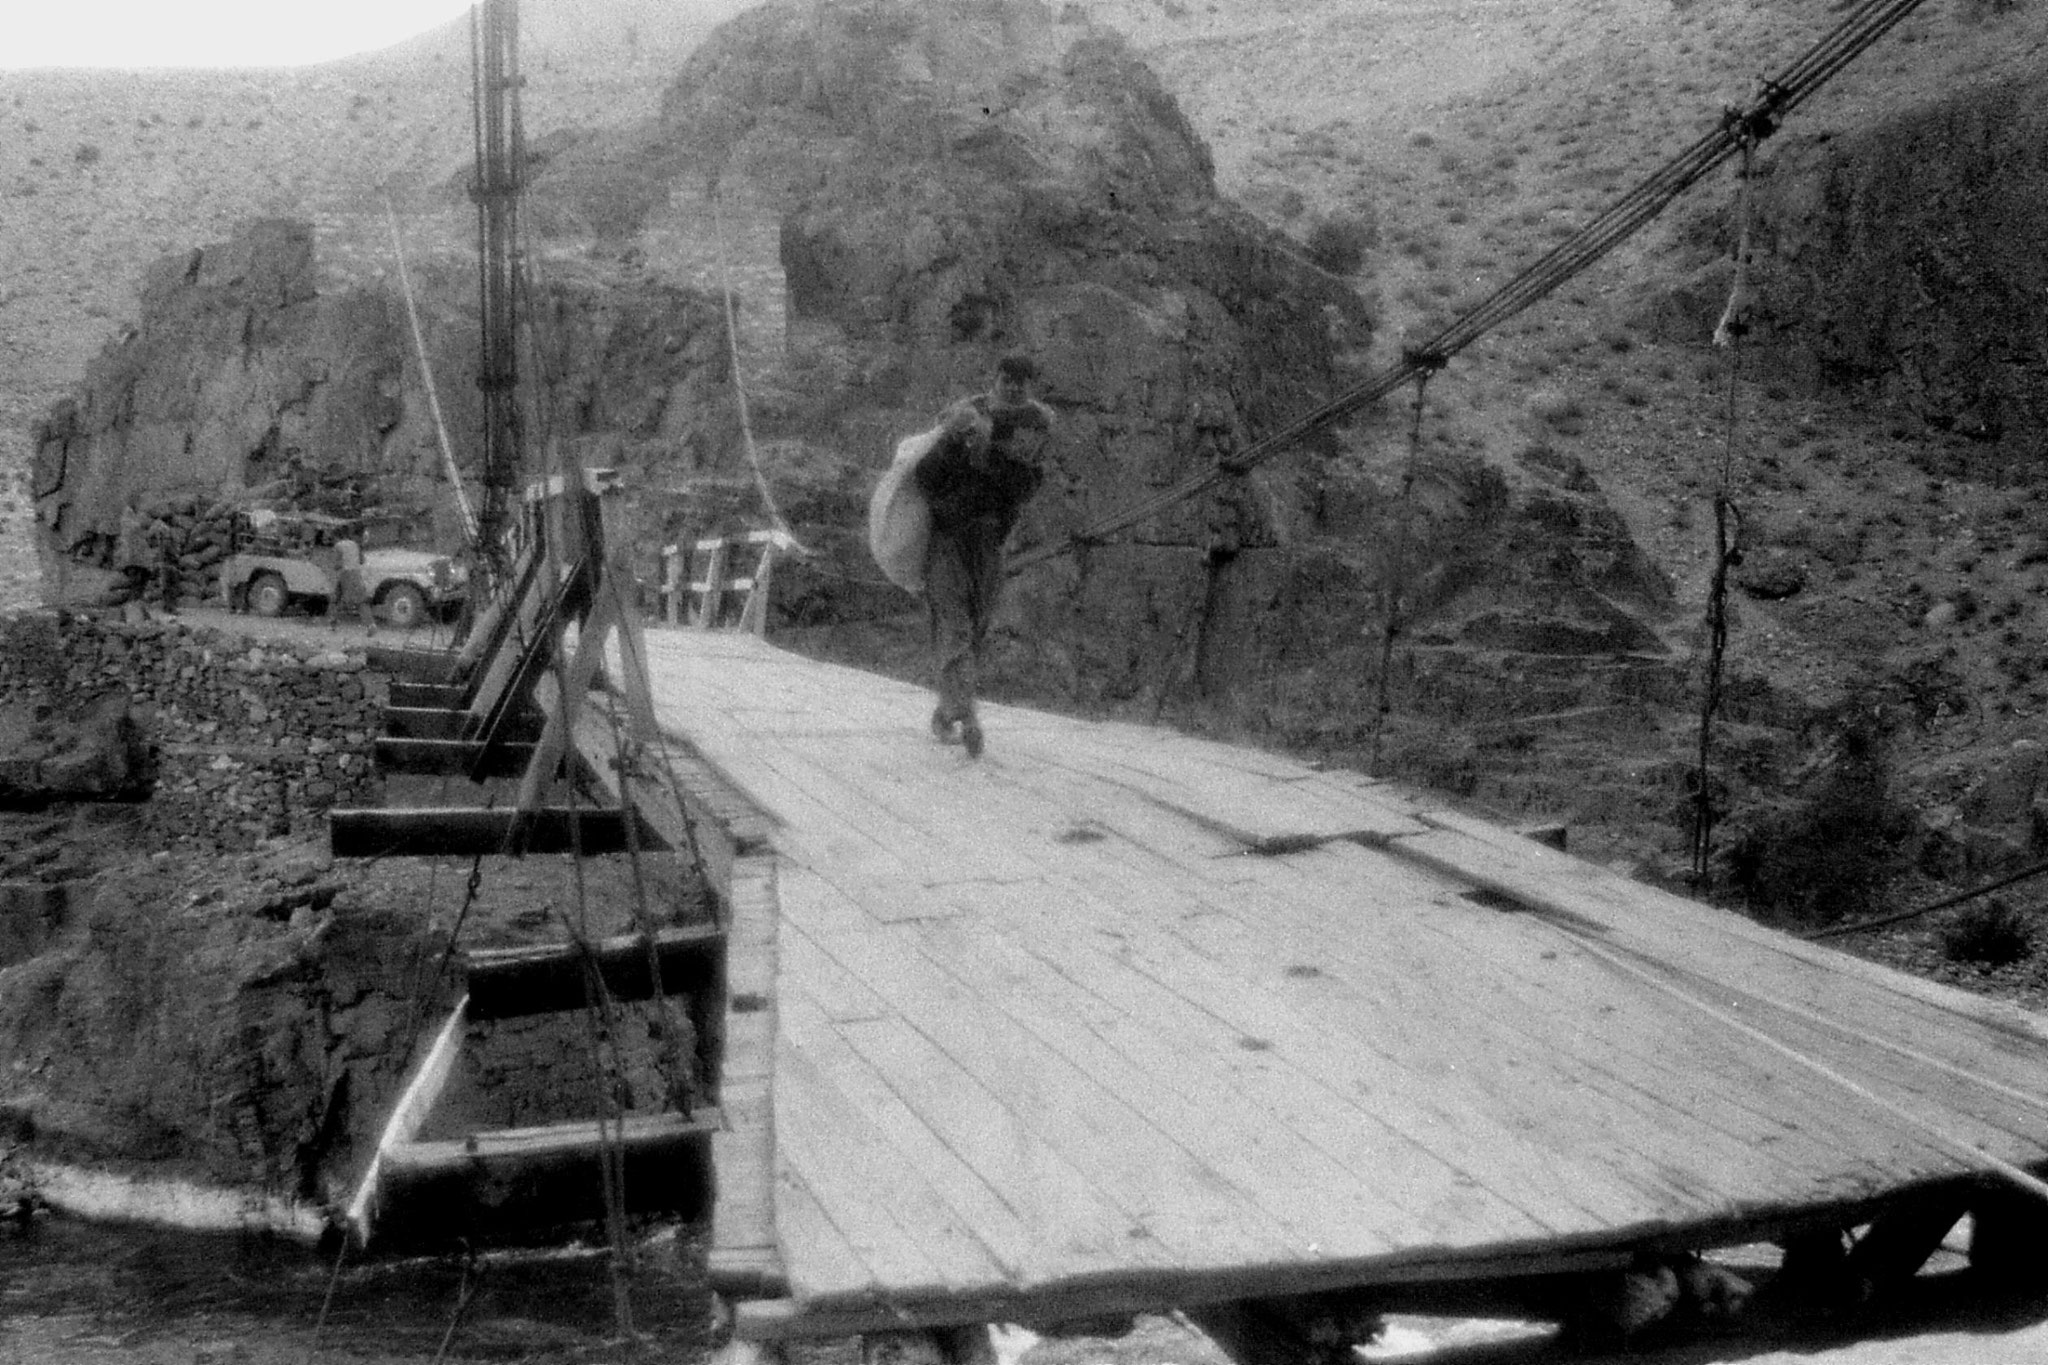 26/10/1989: 13: after Gulpis, unloading jeep and carrying luggages across bridge